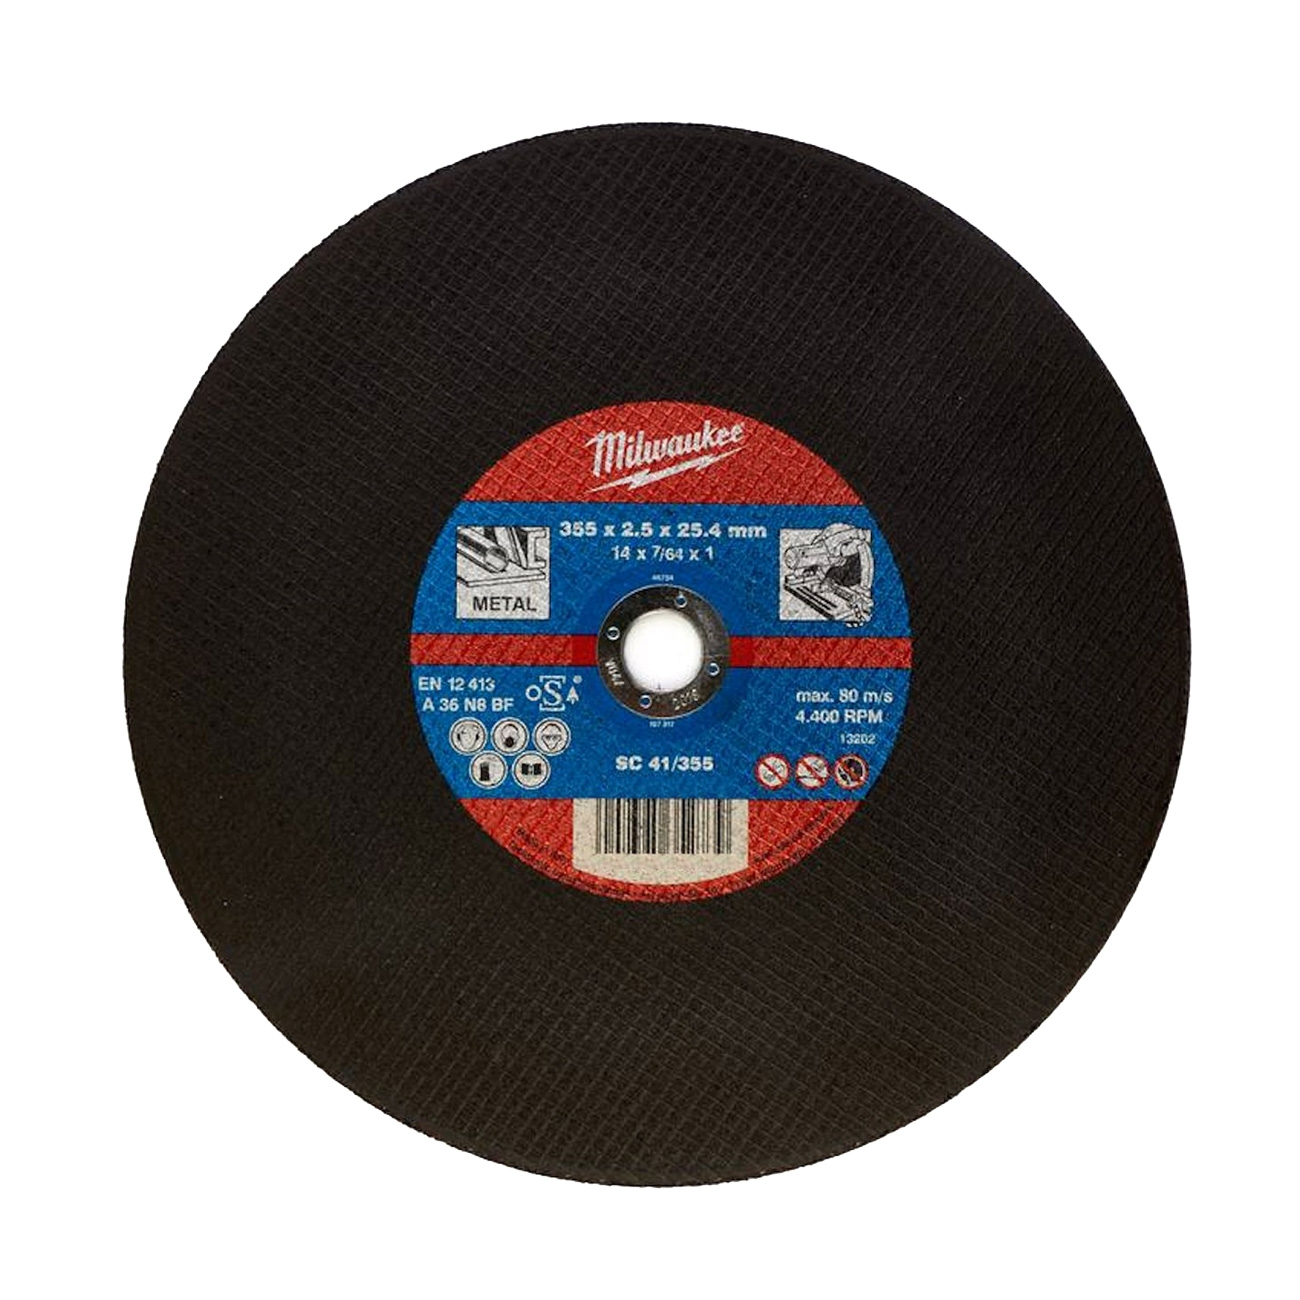 SC 41/355 diam. 355 mm Replacement disc for iron saw